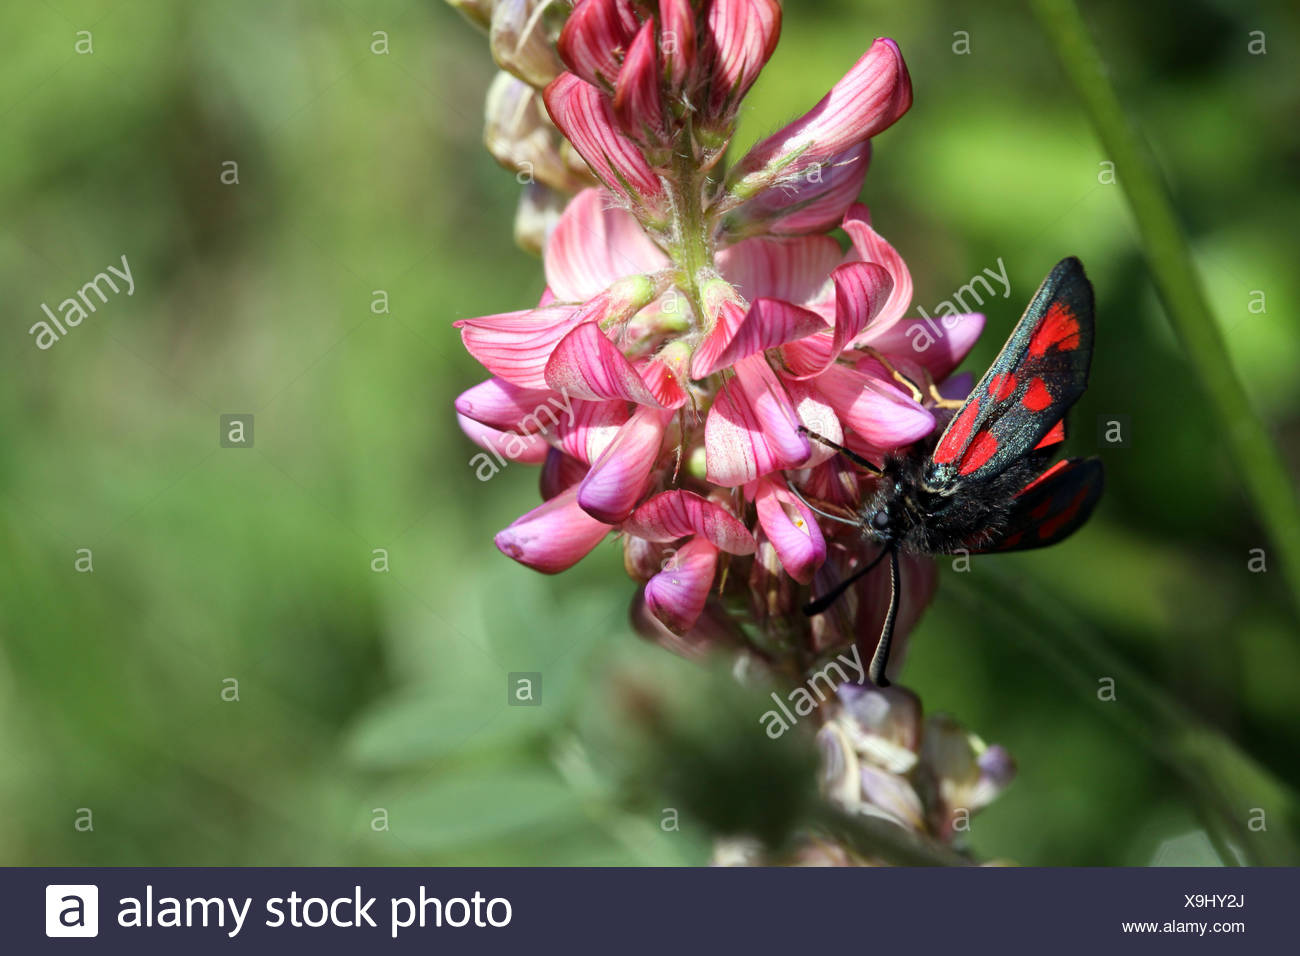 macro, close-up, macro admission, close up view, plant, flower, flowers, flora, Stock Photo